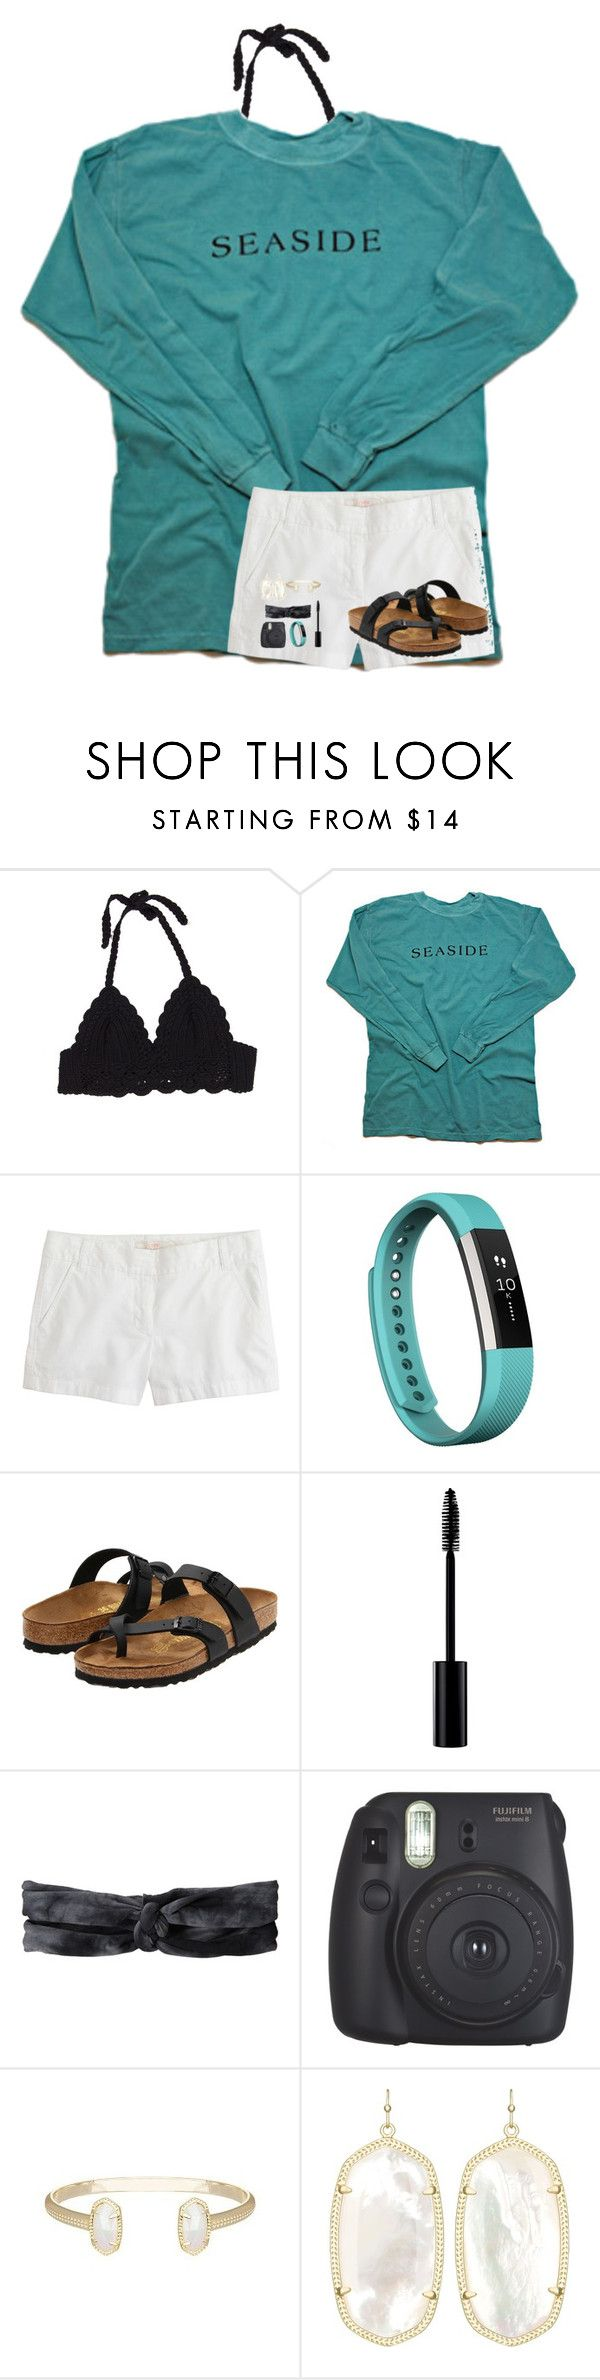 """""""RTD"""" by evedriggers ❤ liked on Polyvore featuring J.Crew, Fitbit, Birkenstock, Christian Dior, prAna and Kendra Scott"""